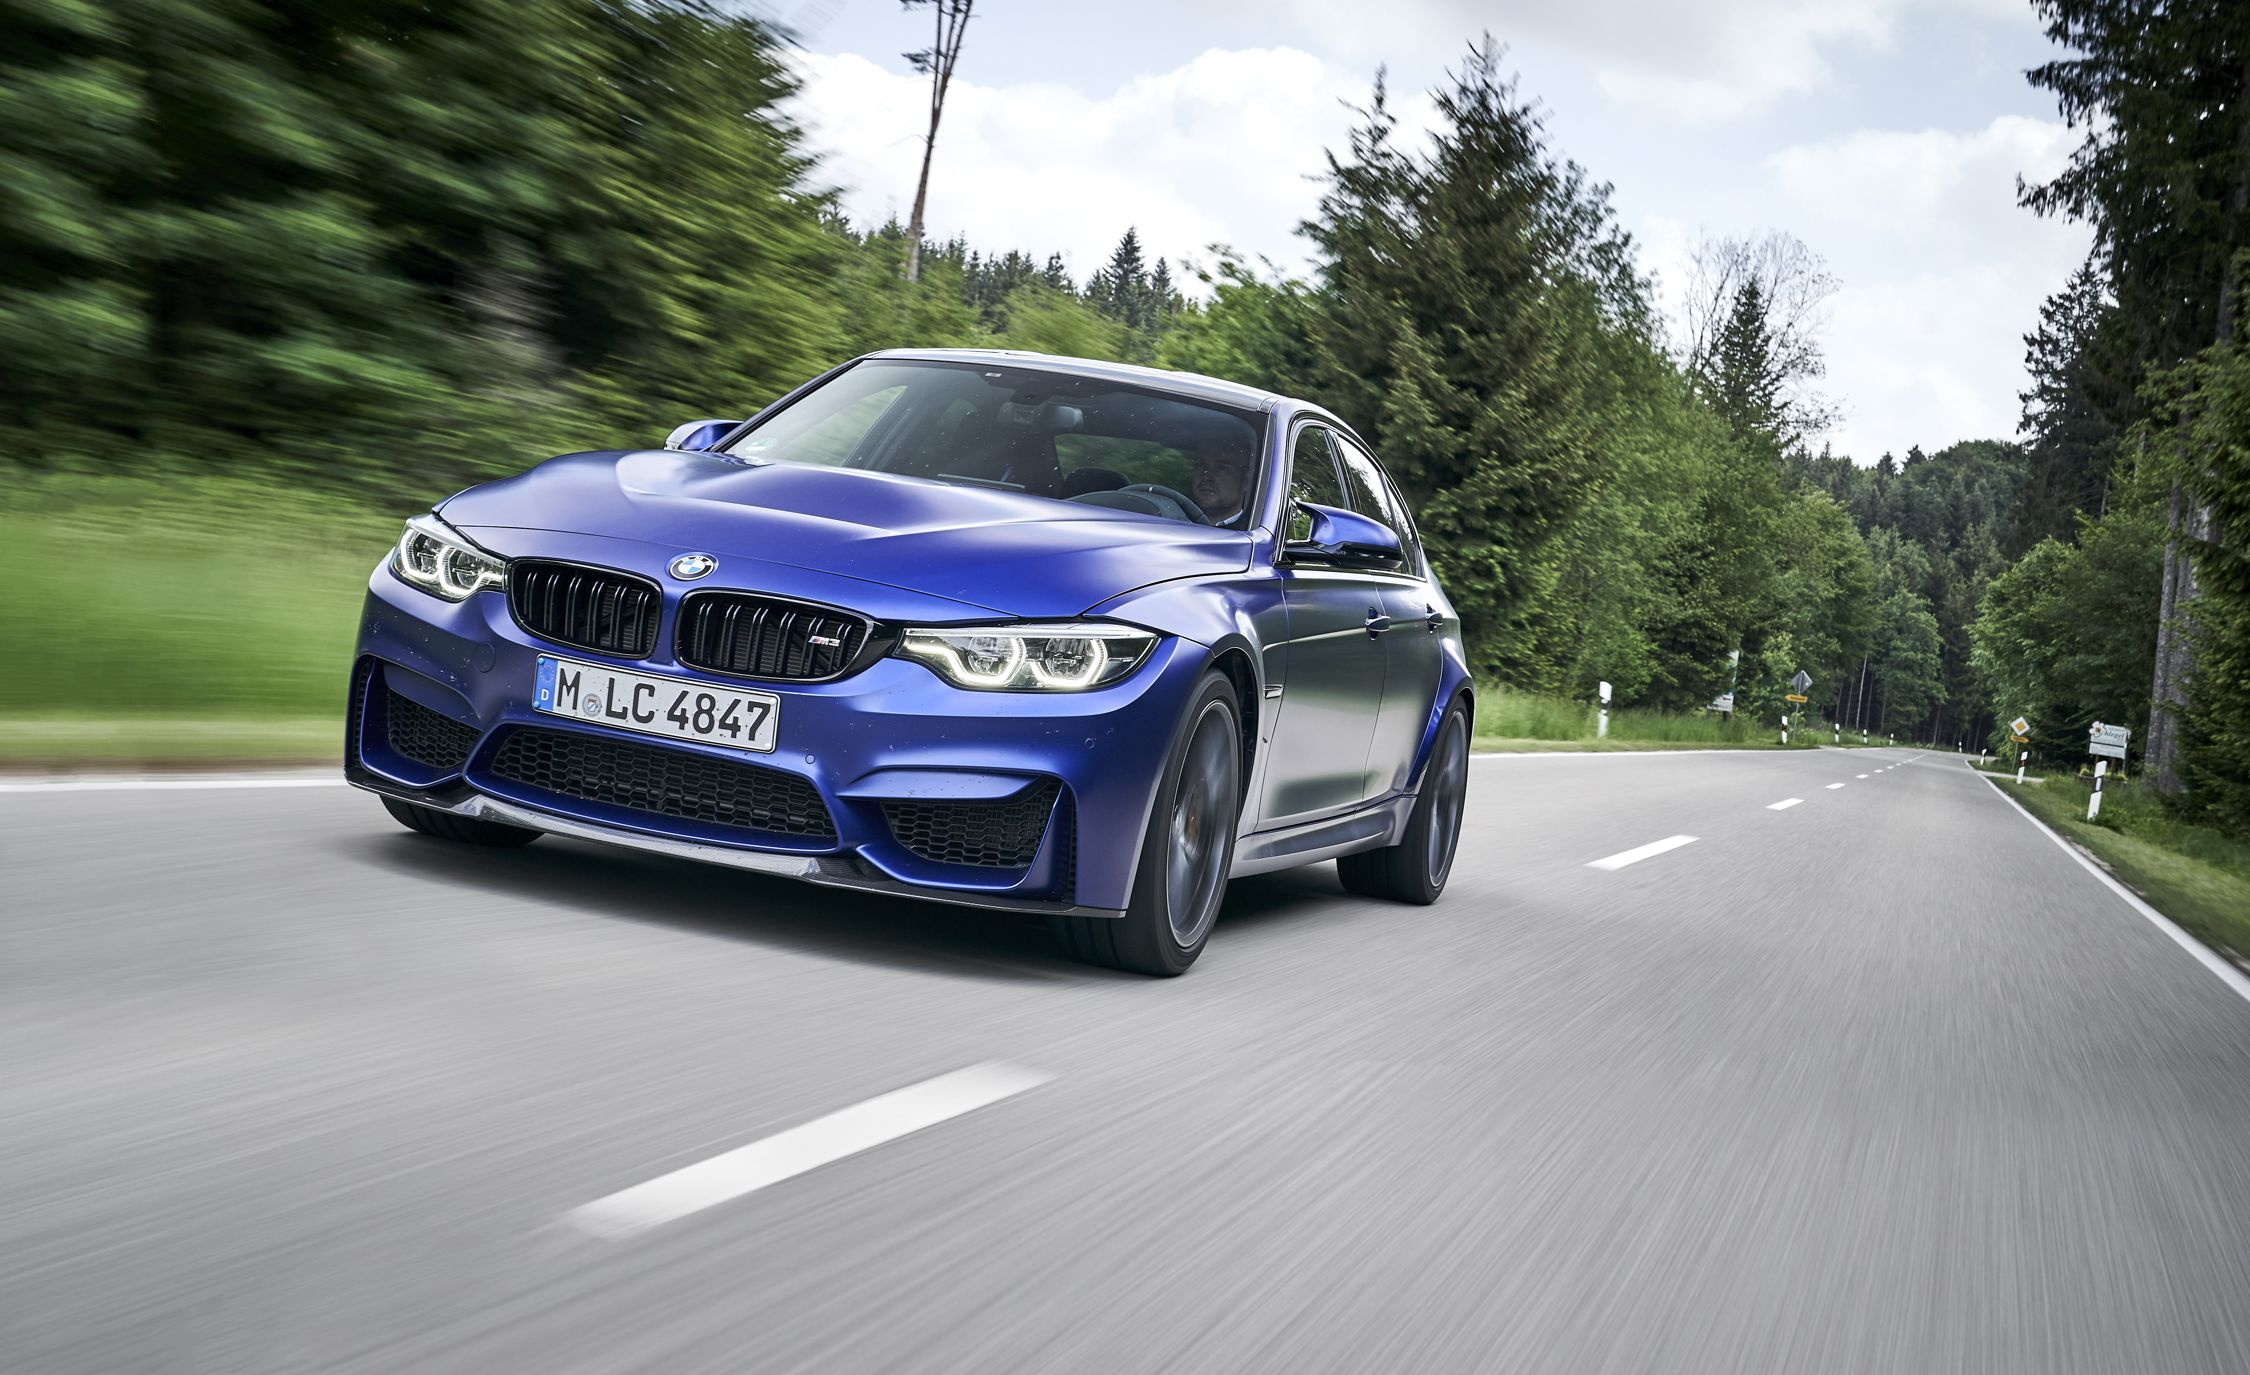 Bmw M3 Reviews >> First Drive Of The Bmw M3 Cs The Best One Yet Review Car And Driver